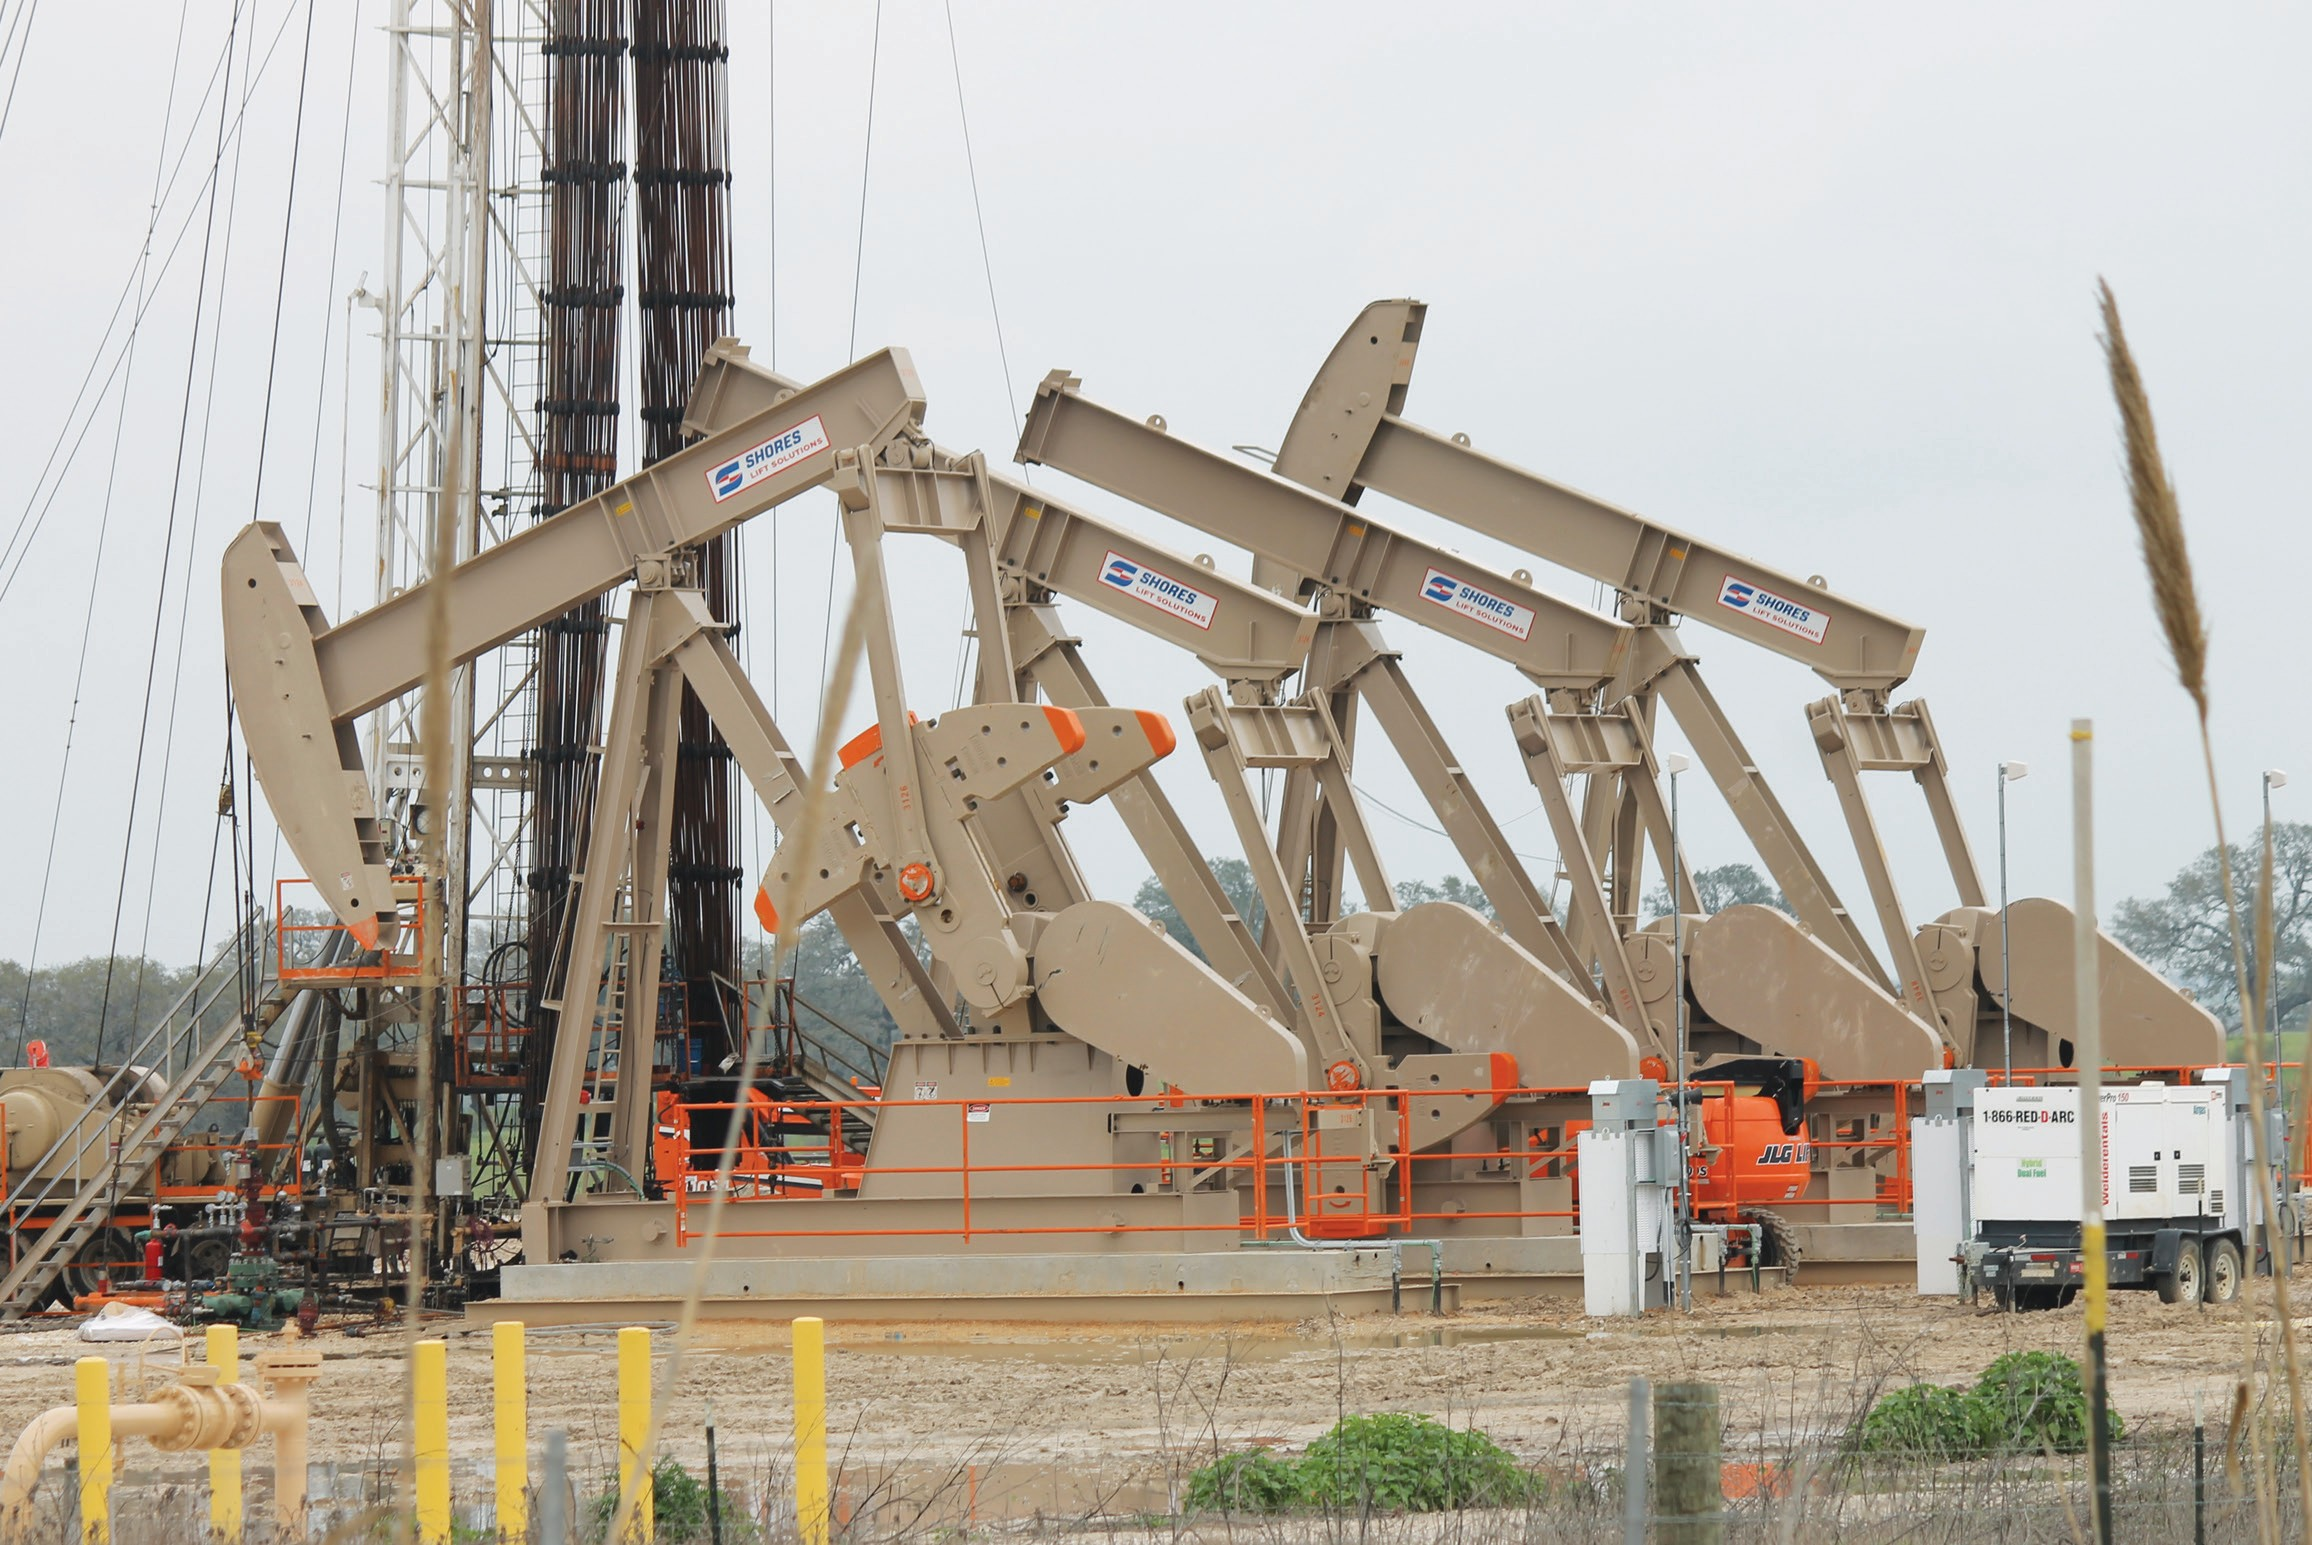 Murphy Oil and Production Co., USA, multi-well pad site northeast of Helena on CR 295 in Karnes County, with workover rig.